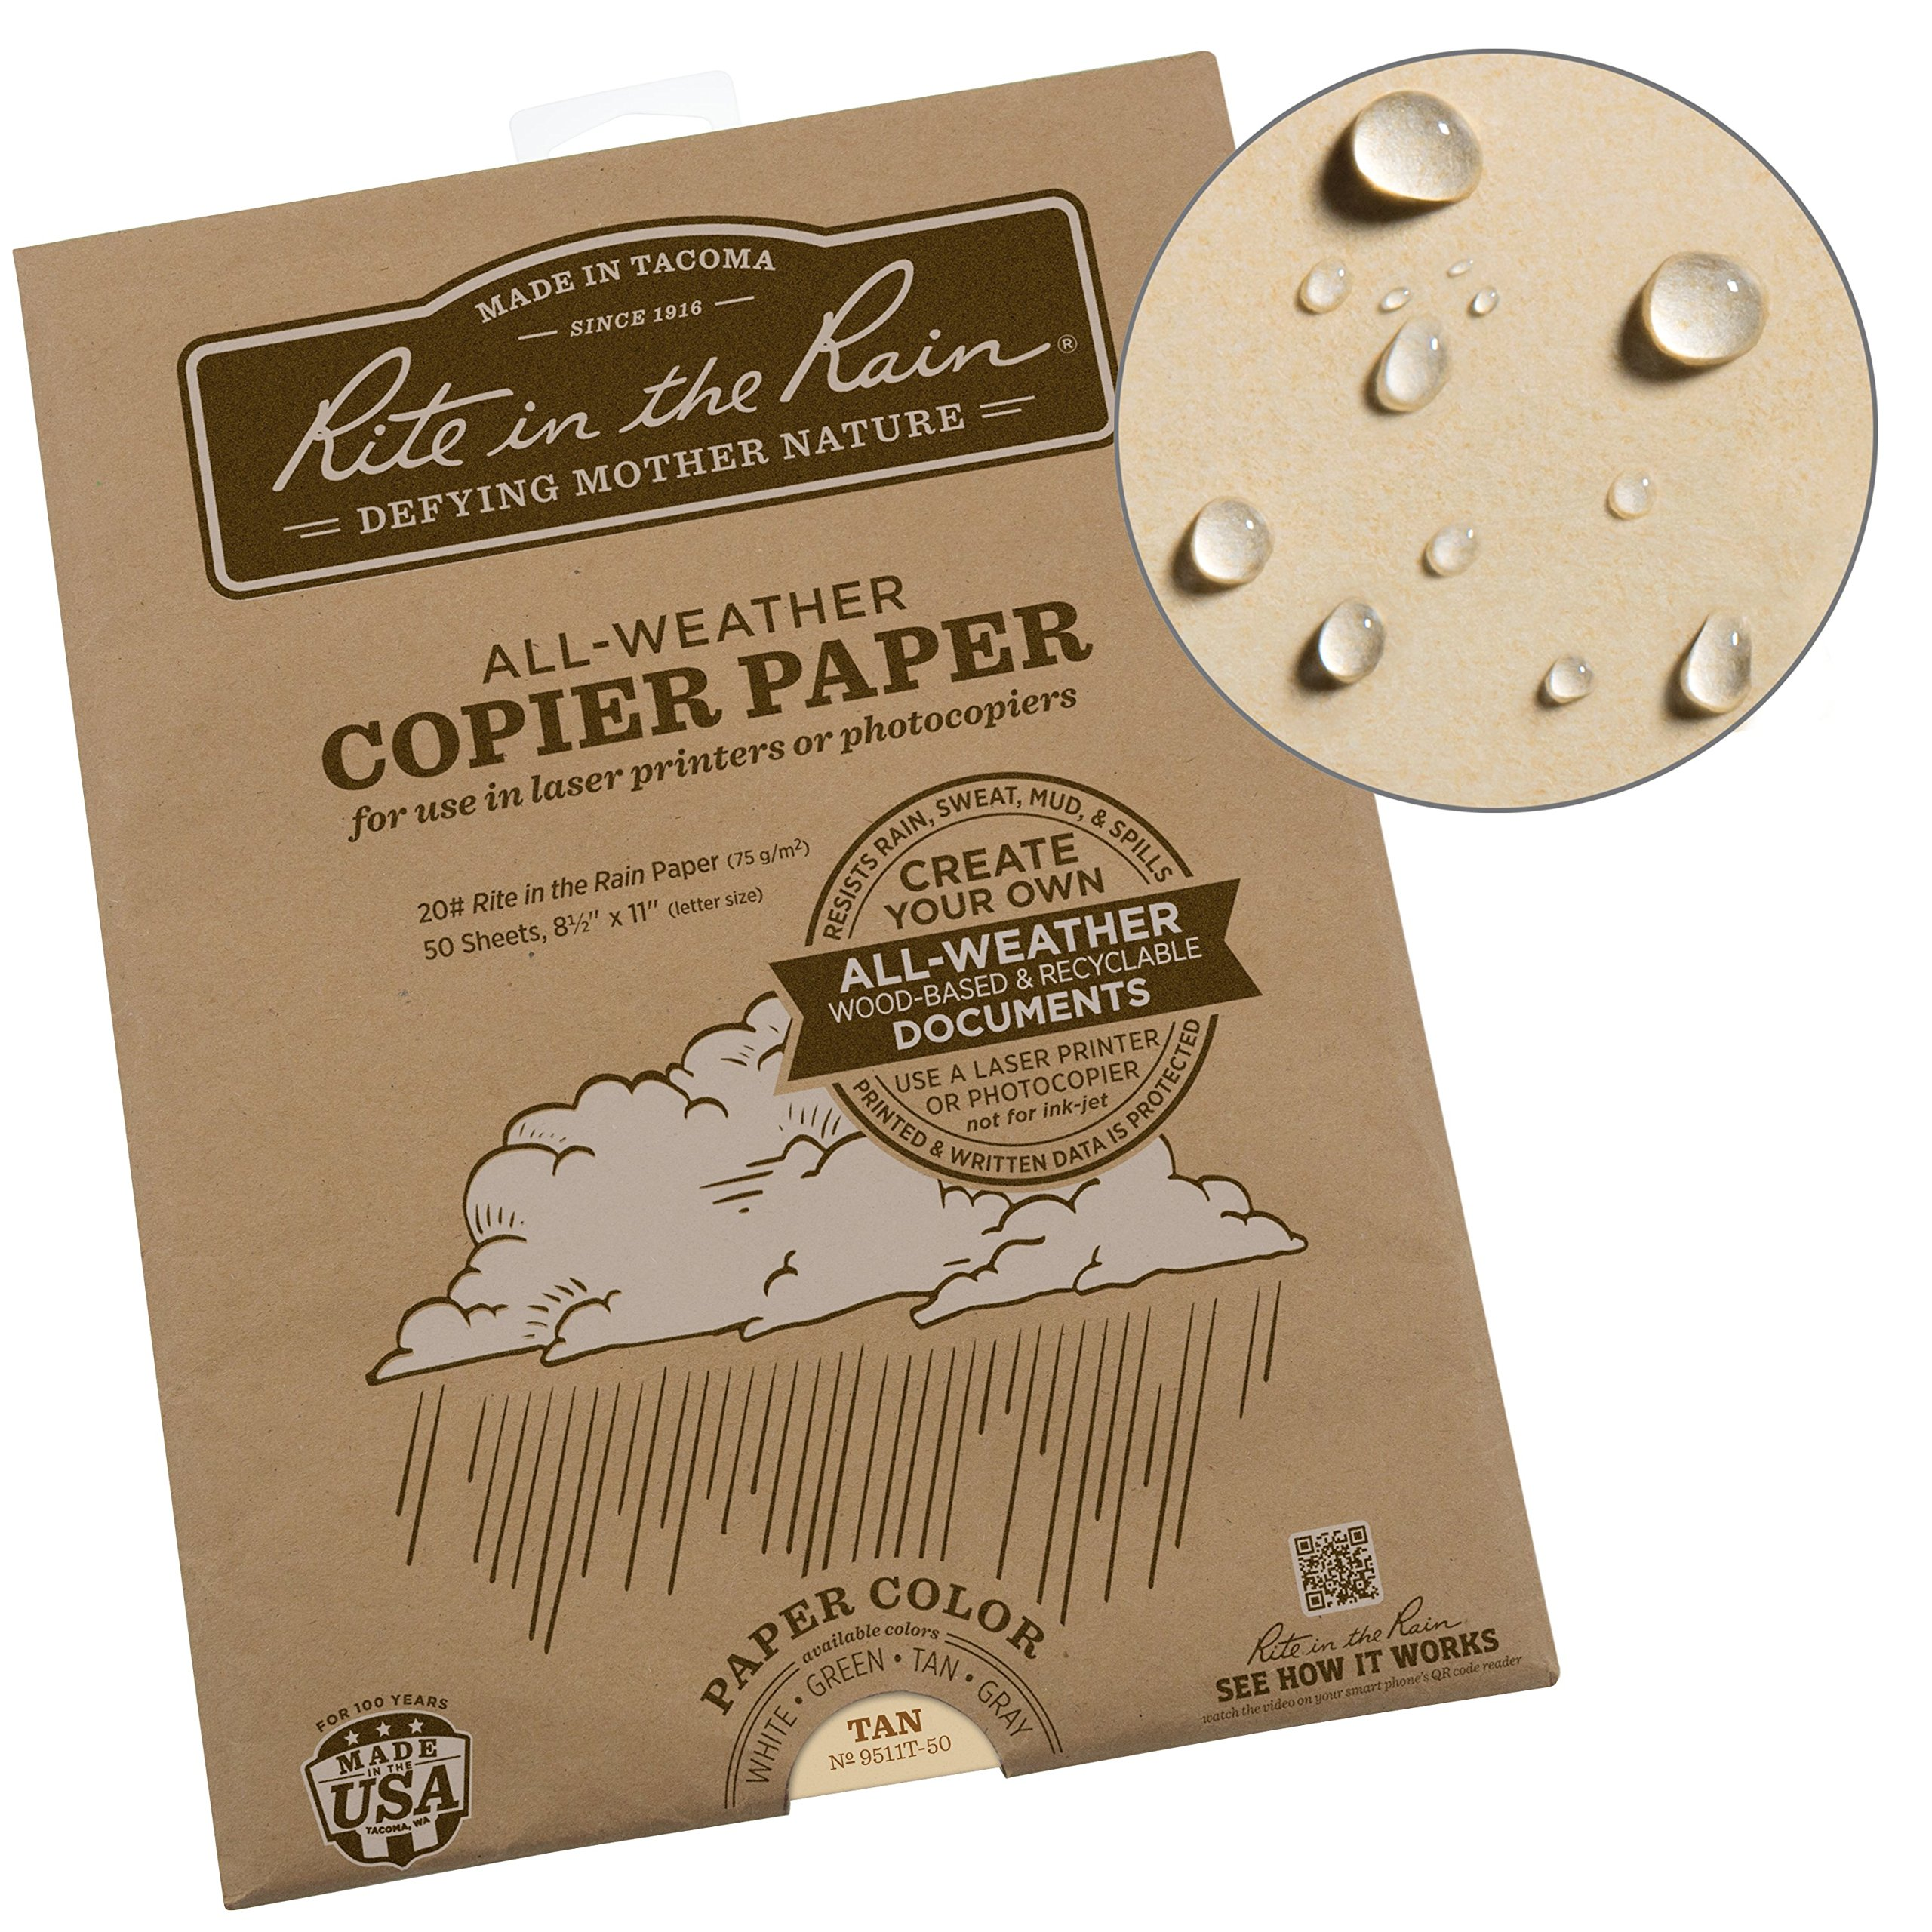 Rite in the Rain Weatherproof Laser, 8 1/2'' x 11'', Tan Colored Printer Paper, 50 Sheet Pack (9511T-50)